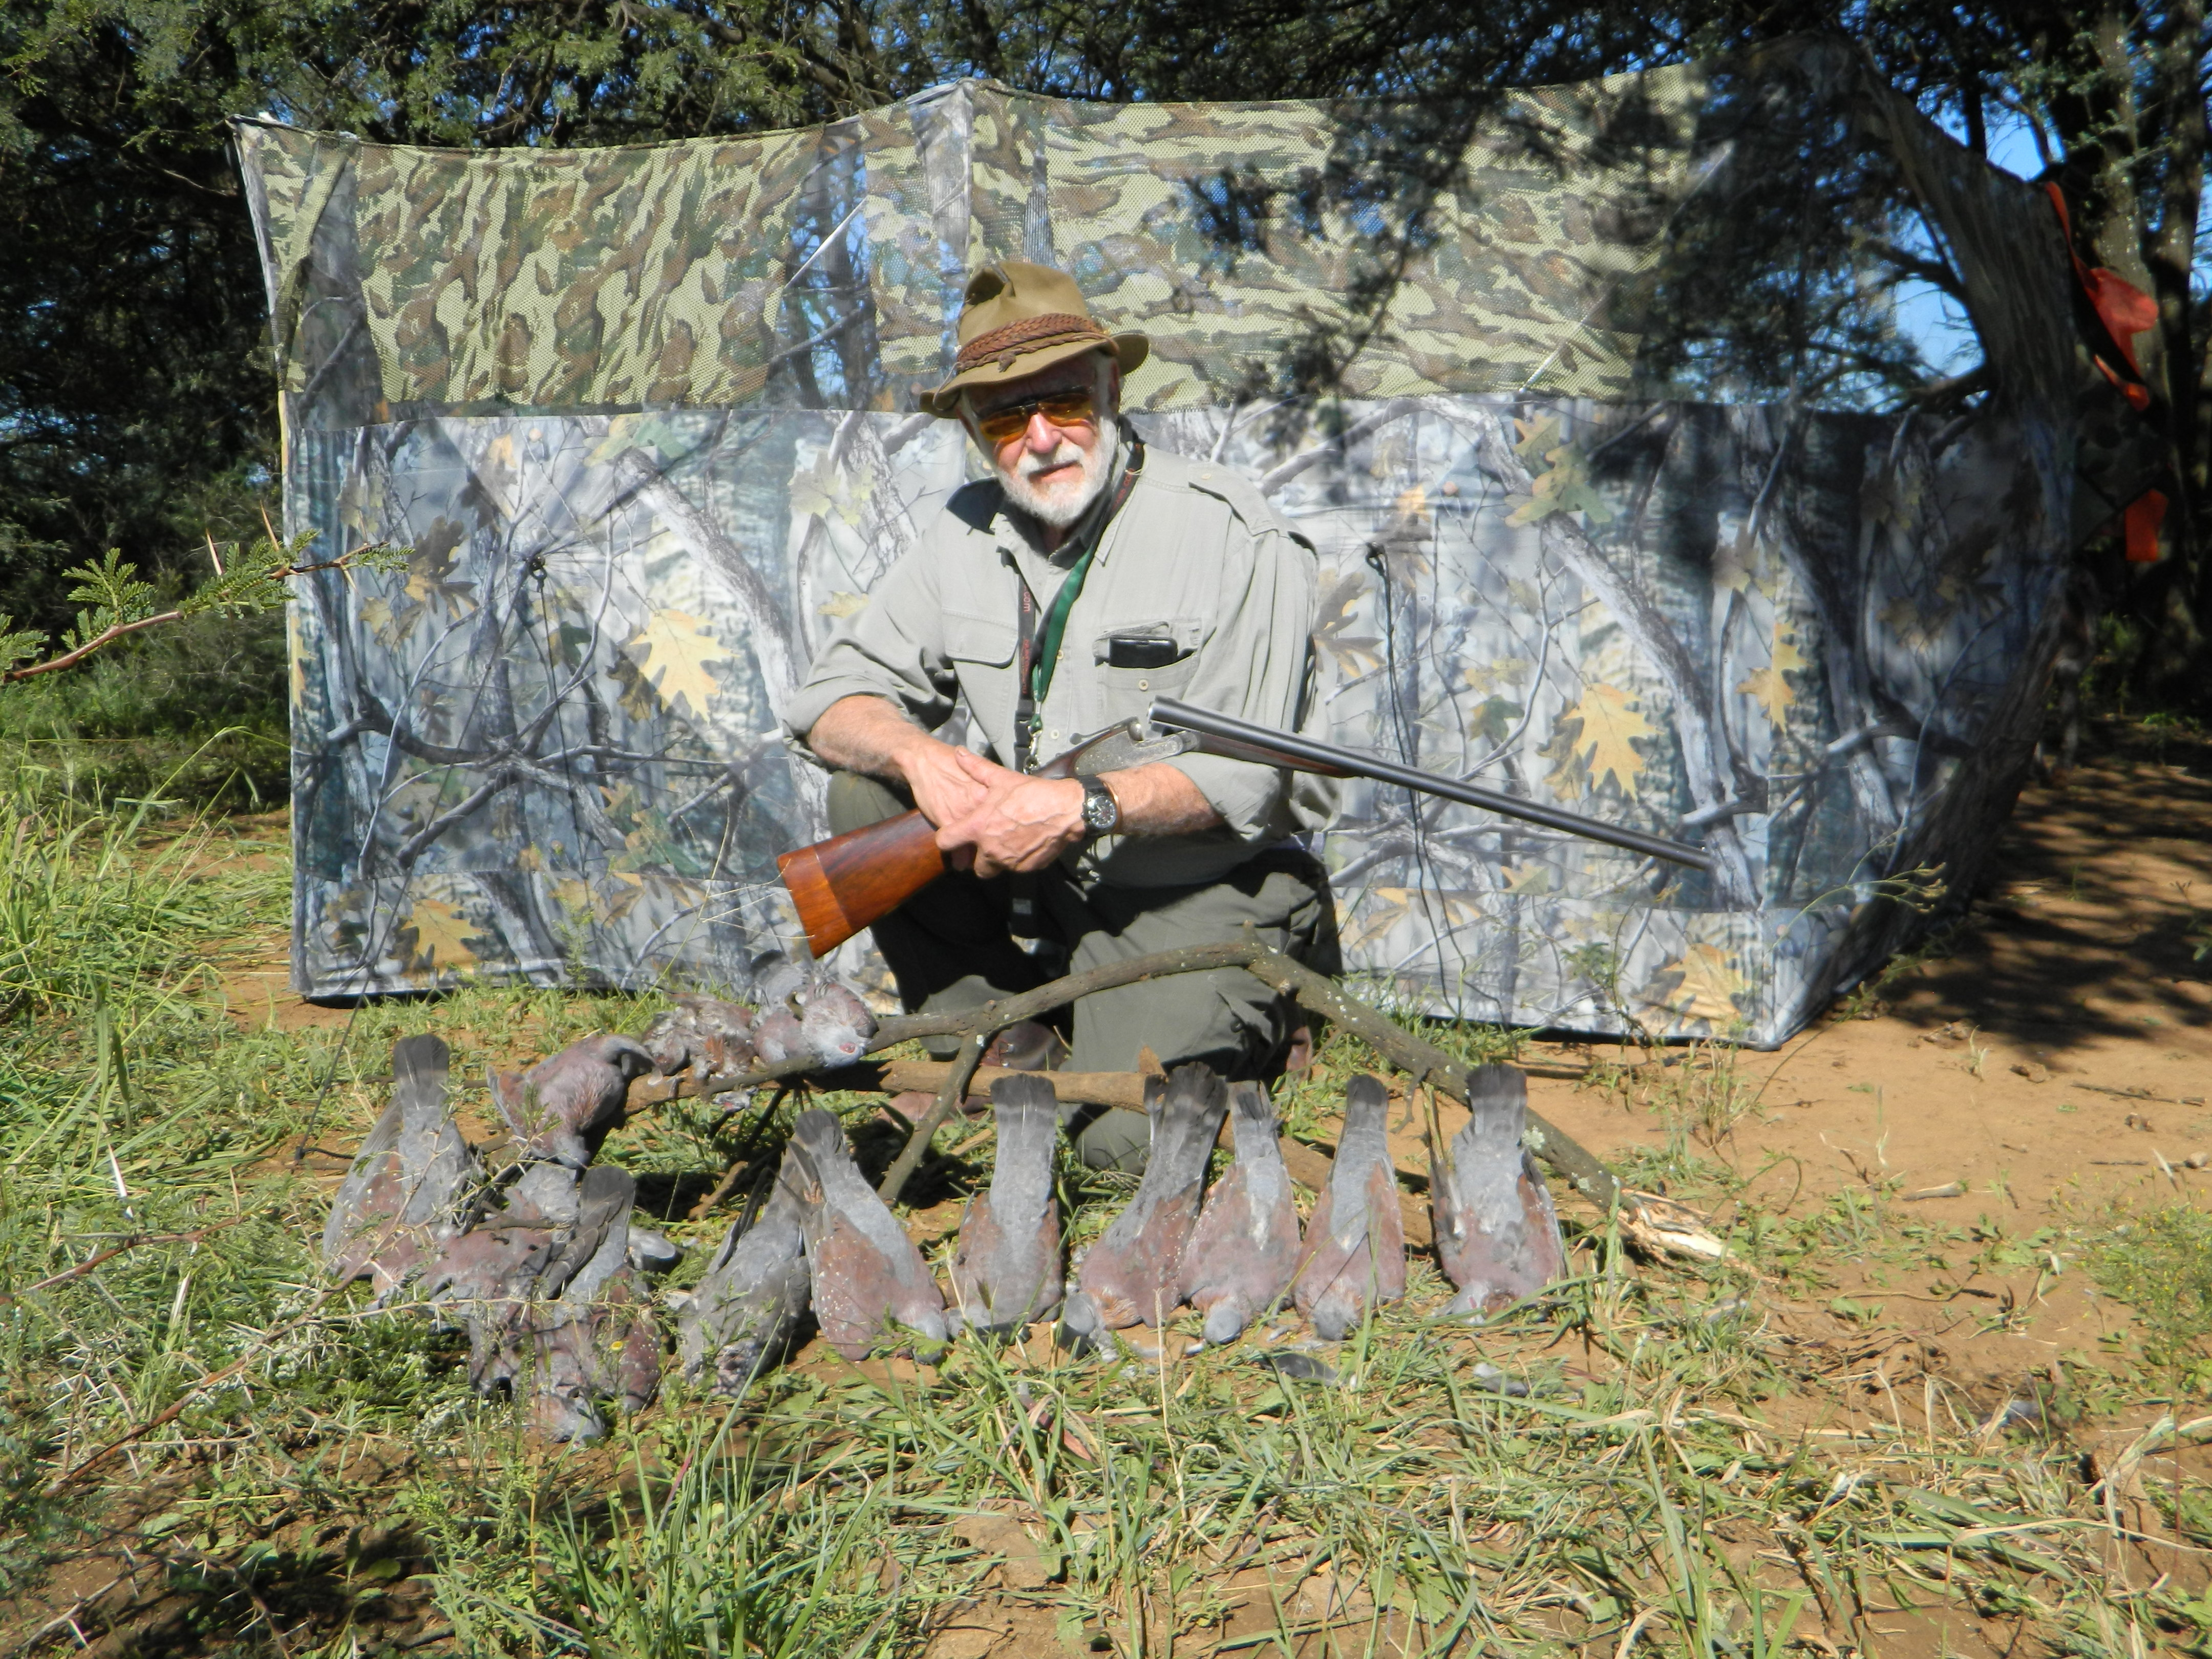 South Africa Rock Pigeons - Shooting Sportsman